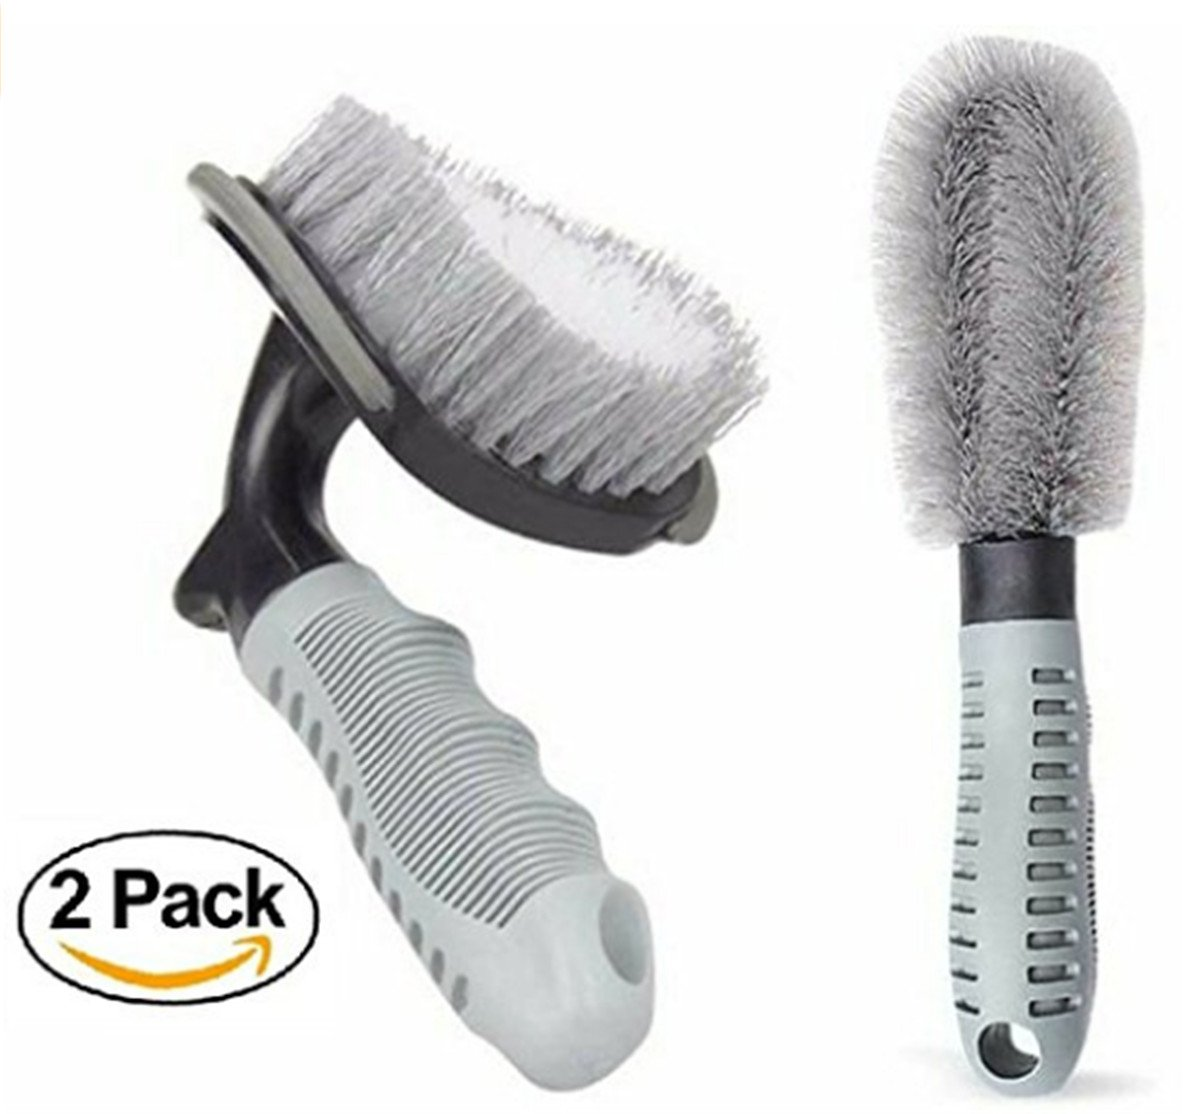 Car Cleaning Brush,Tire Wheel Brush 2 Pack Car Tire & Rim Cleaning/Detail brush Tool for Car Truck Motorcycle or RV